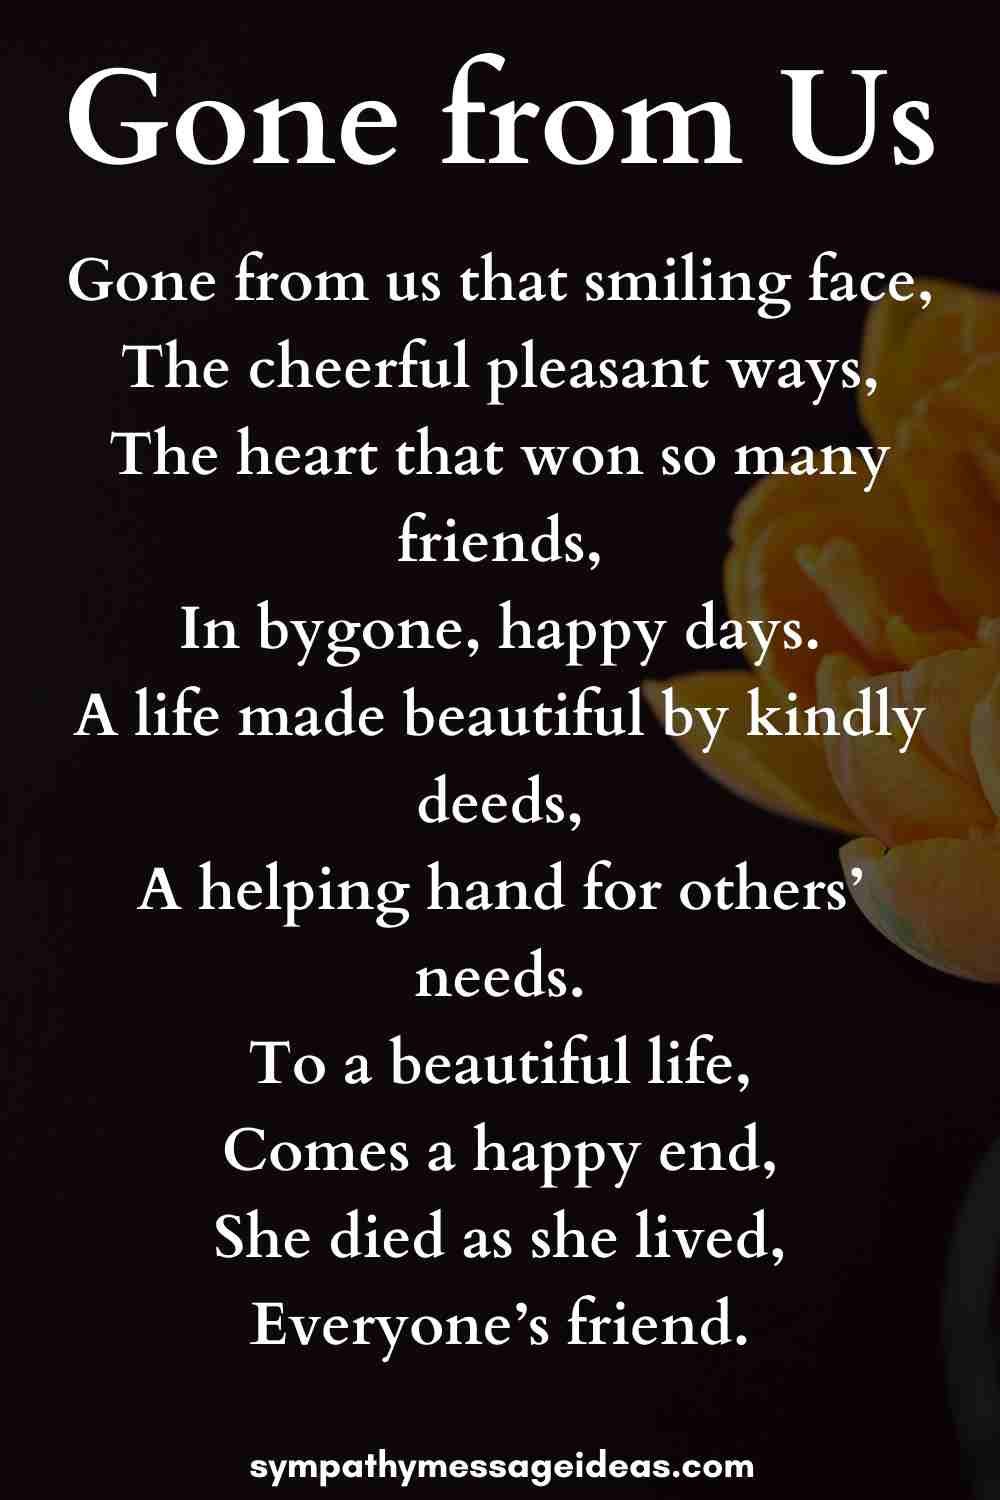 gone from us funeral poem for grandmother